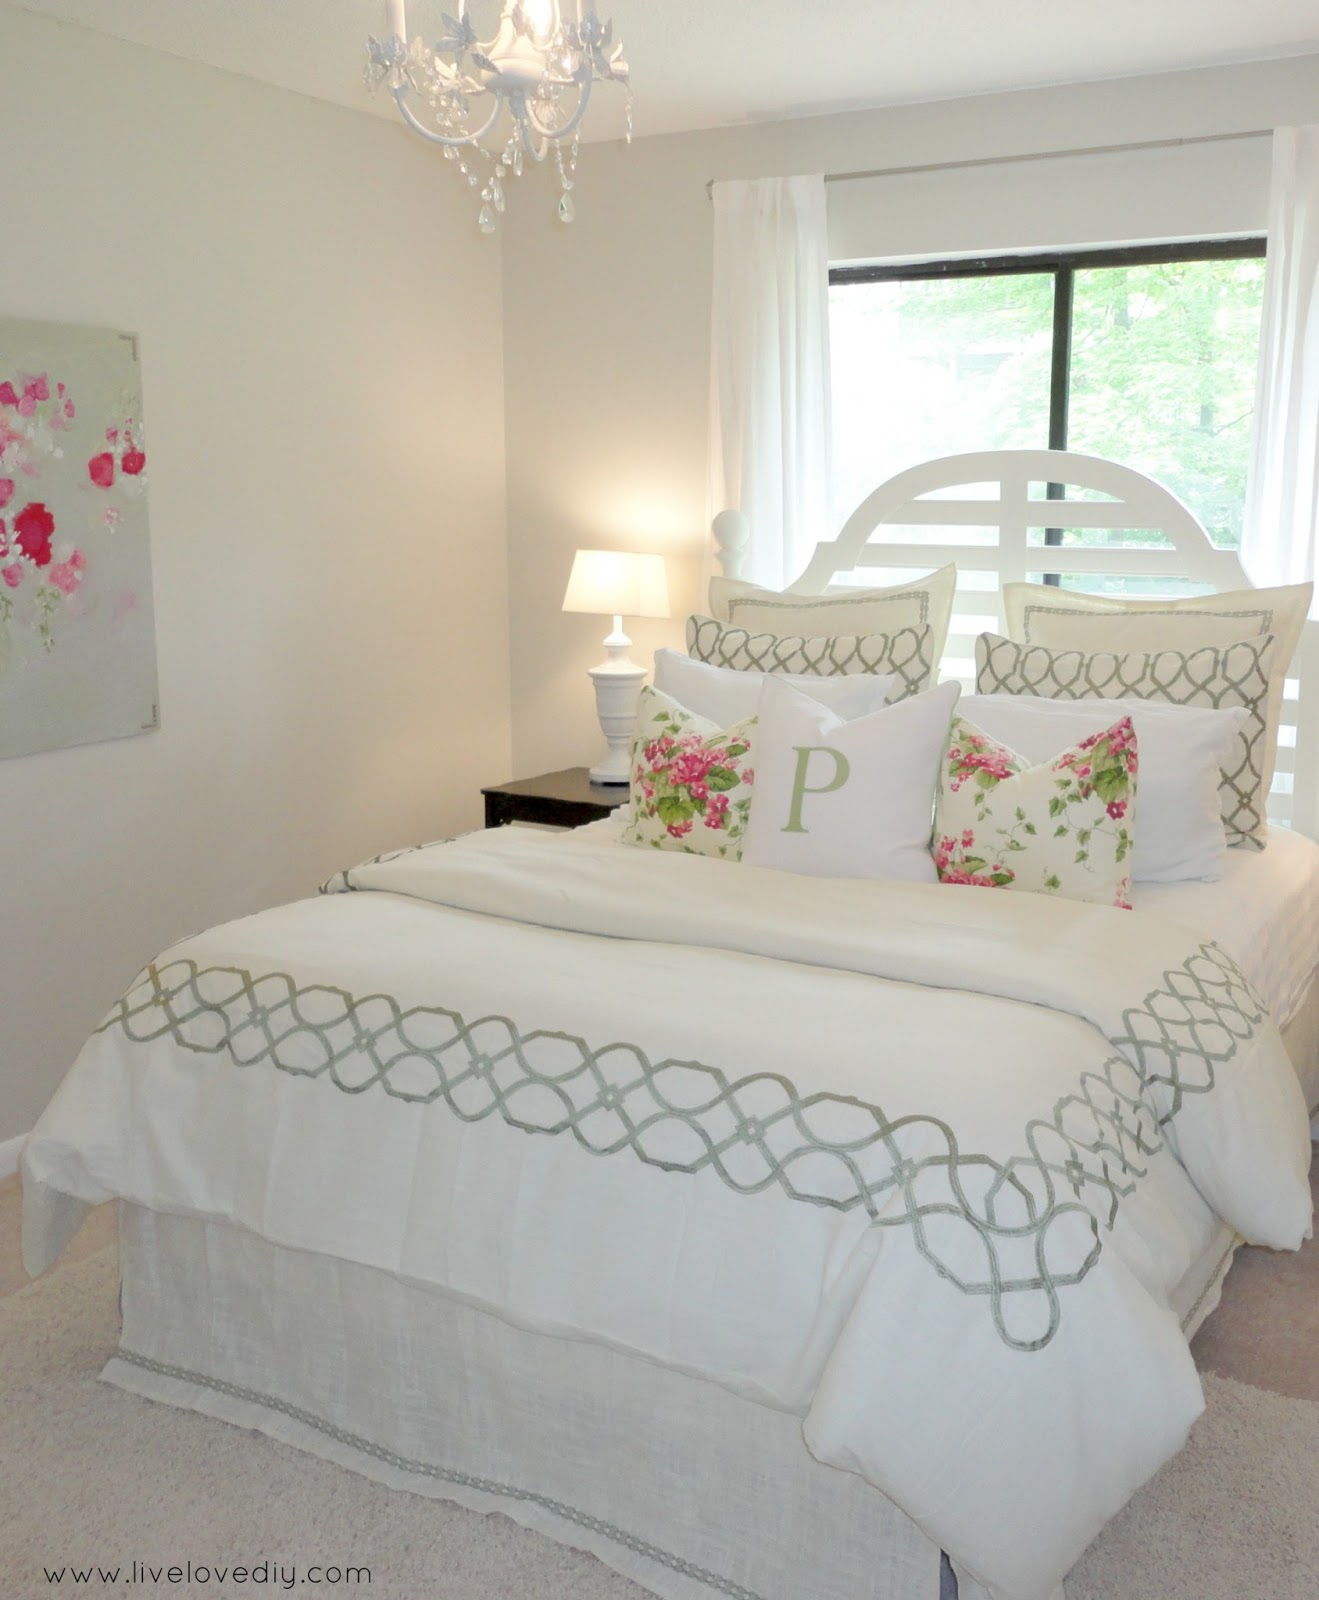 Livelovediy decorating bedrooms with secondhand finds for Guest bedroom ideas